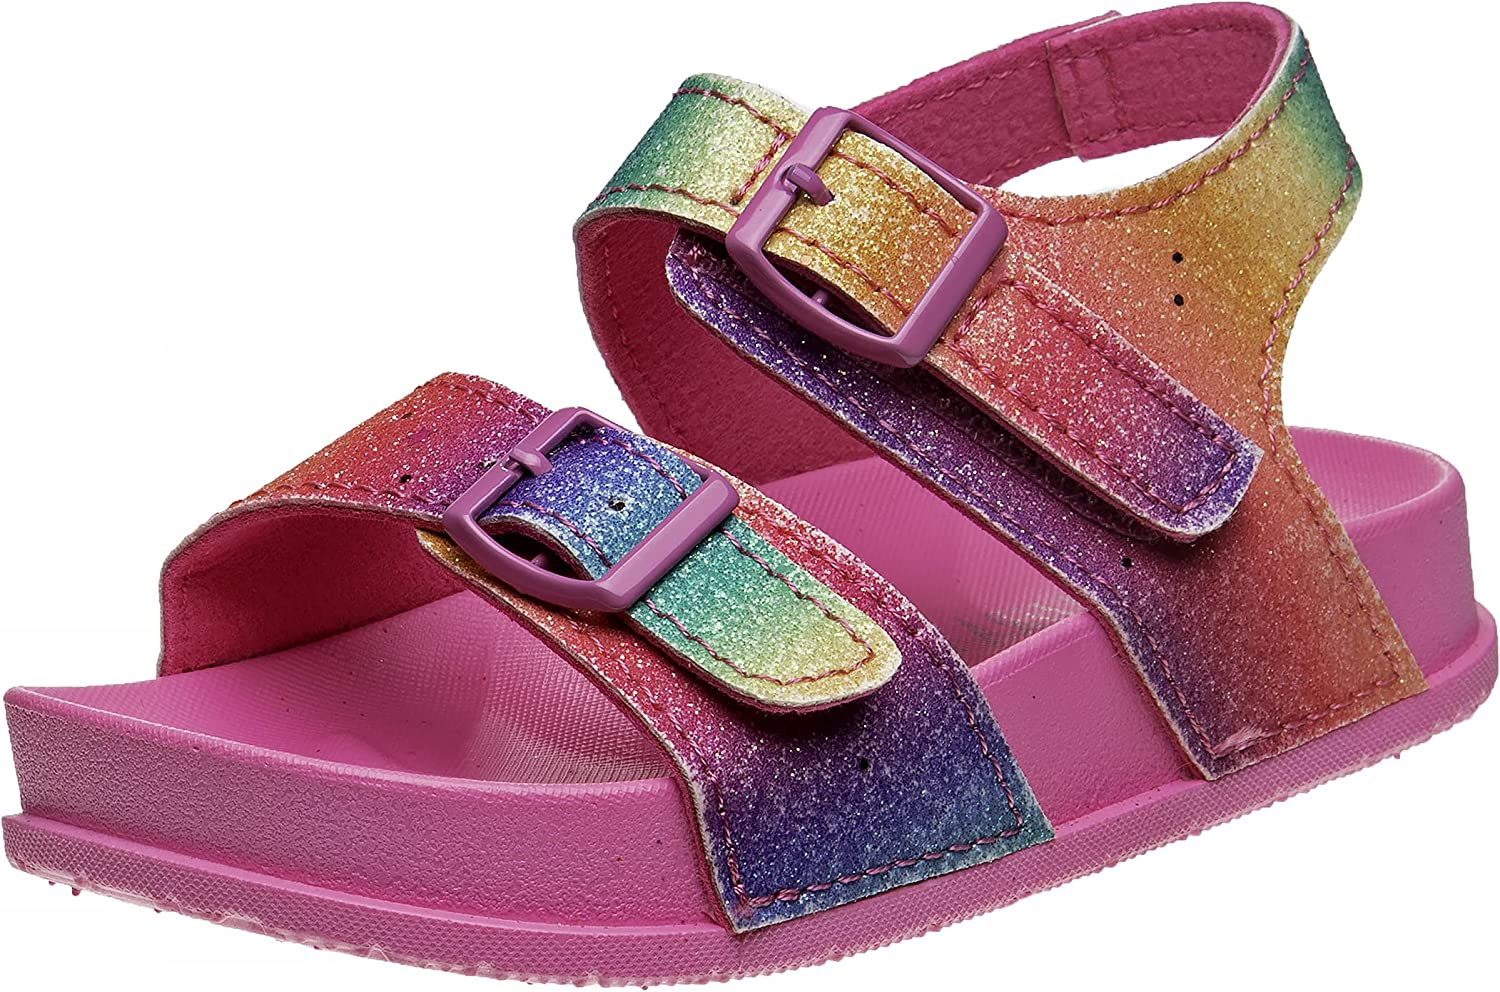 Laura Super sale period limited Ashley Girls' Sandals – Strapped Open Toe Buckle Bombing free shipping